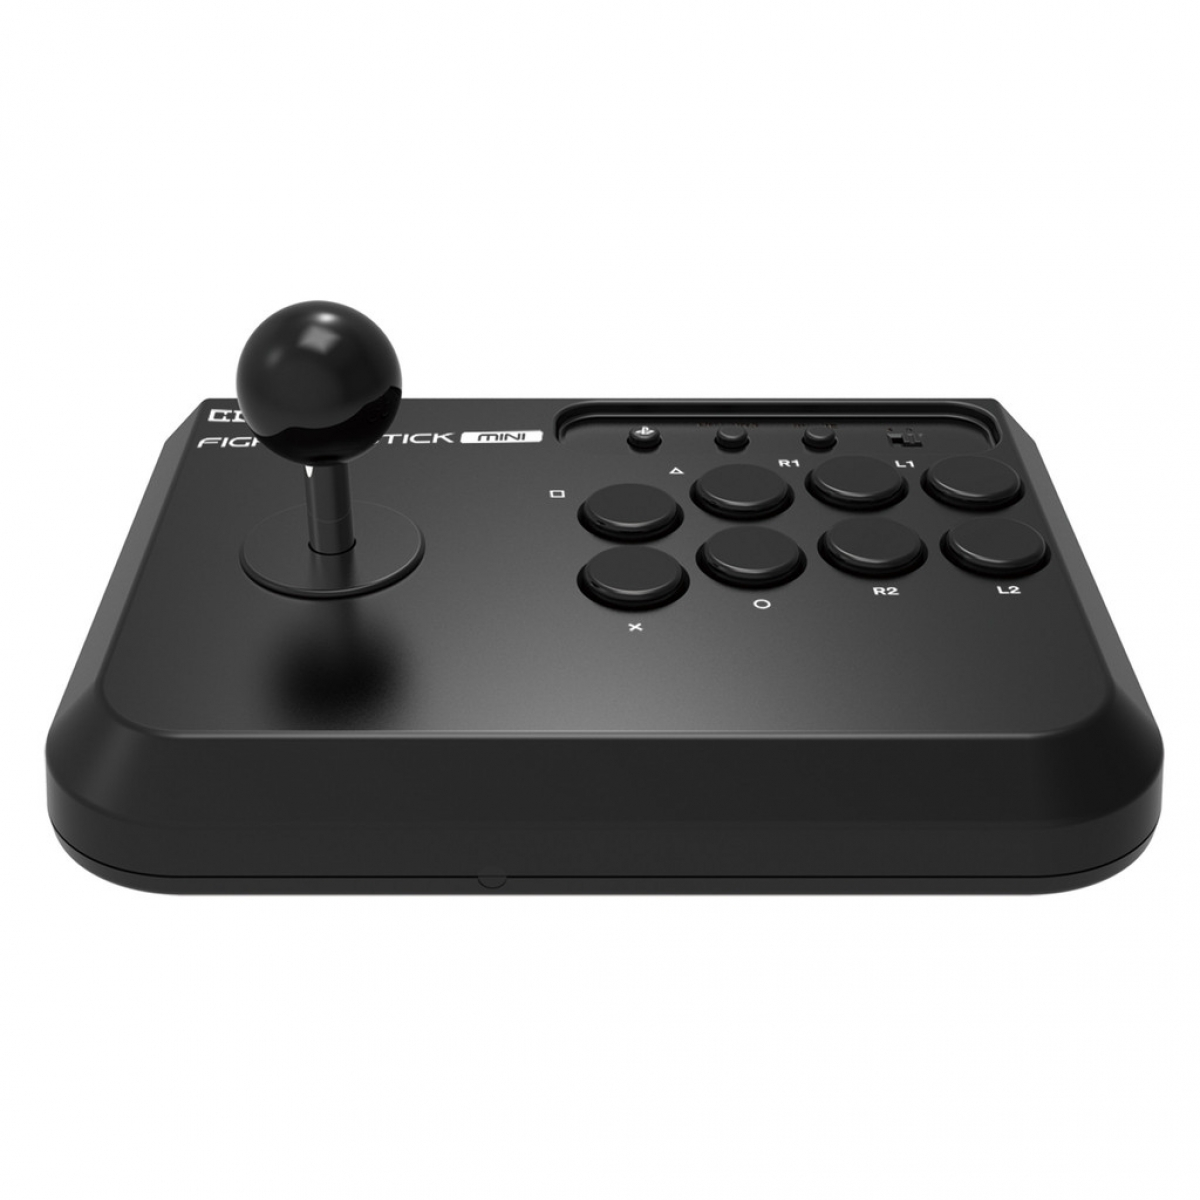 HORI Fighting Stick Mini 4 for Playstation PS4 and PS3